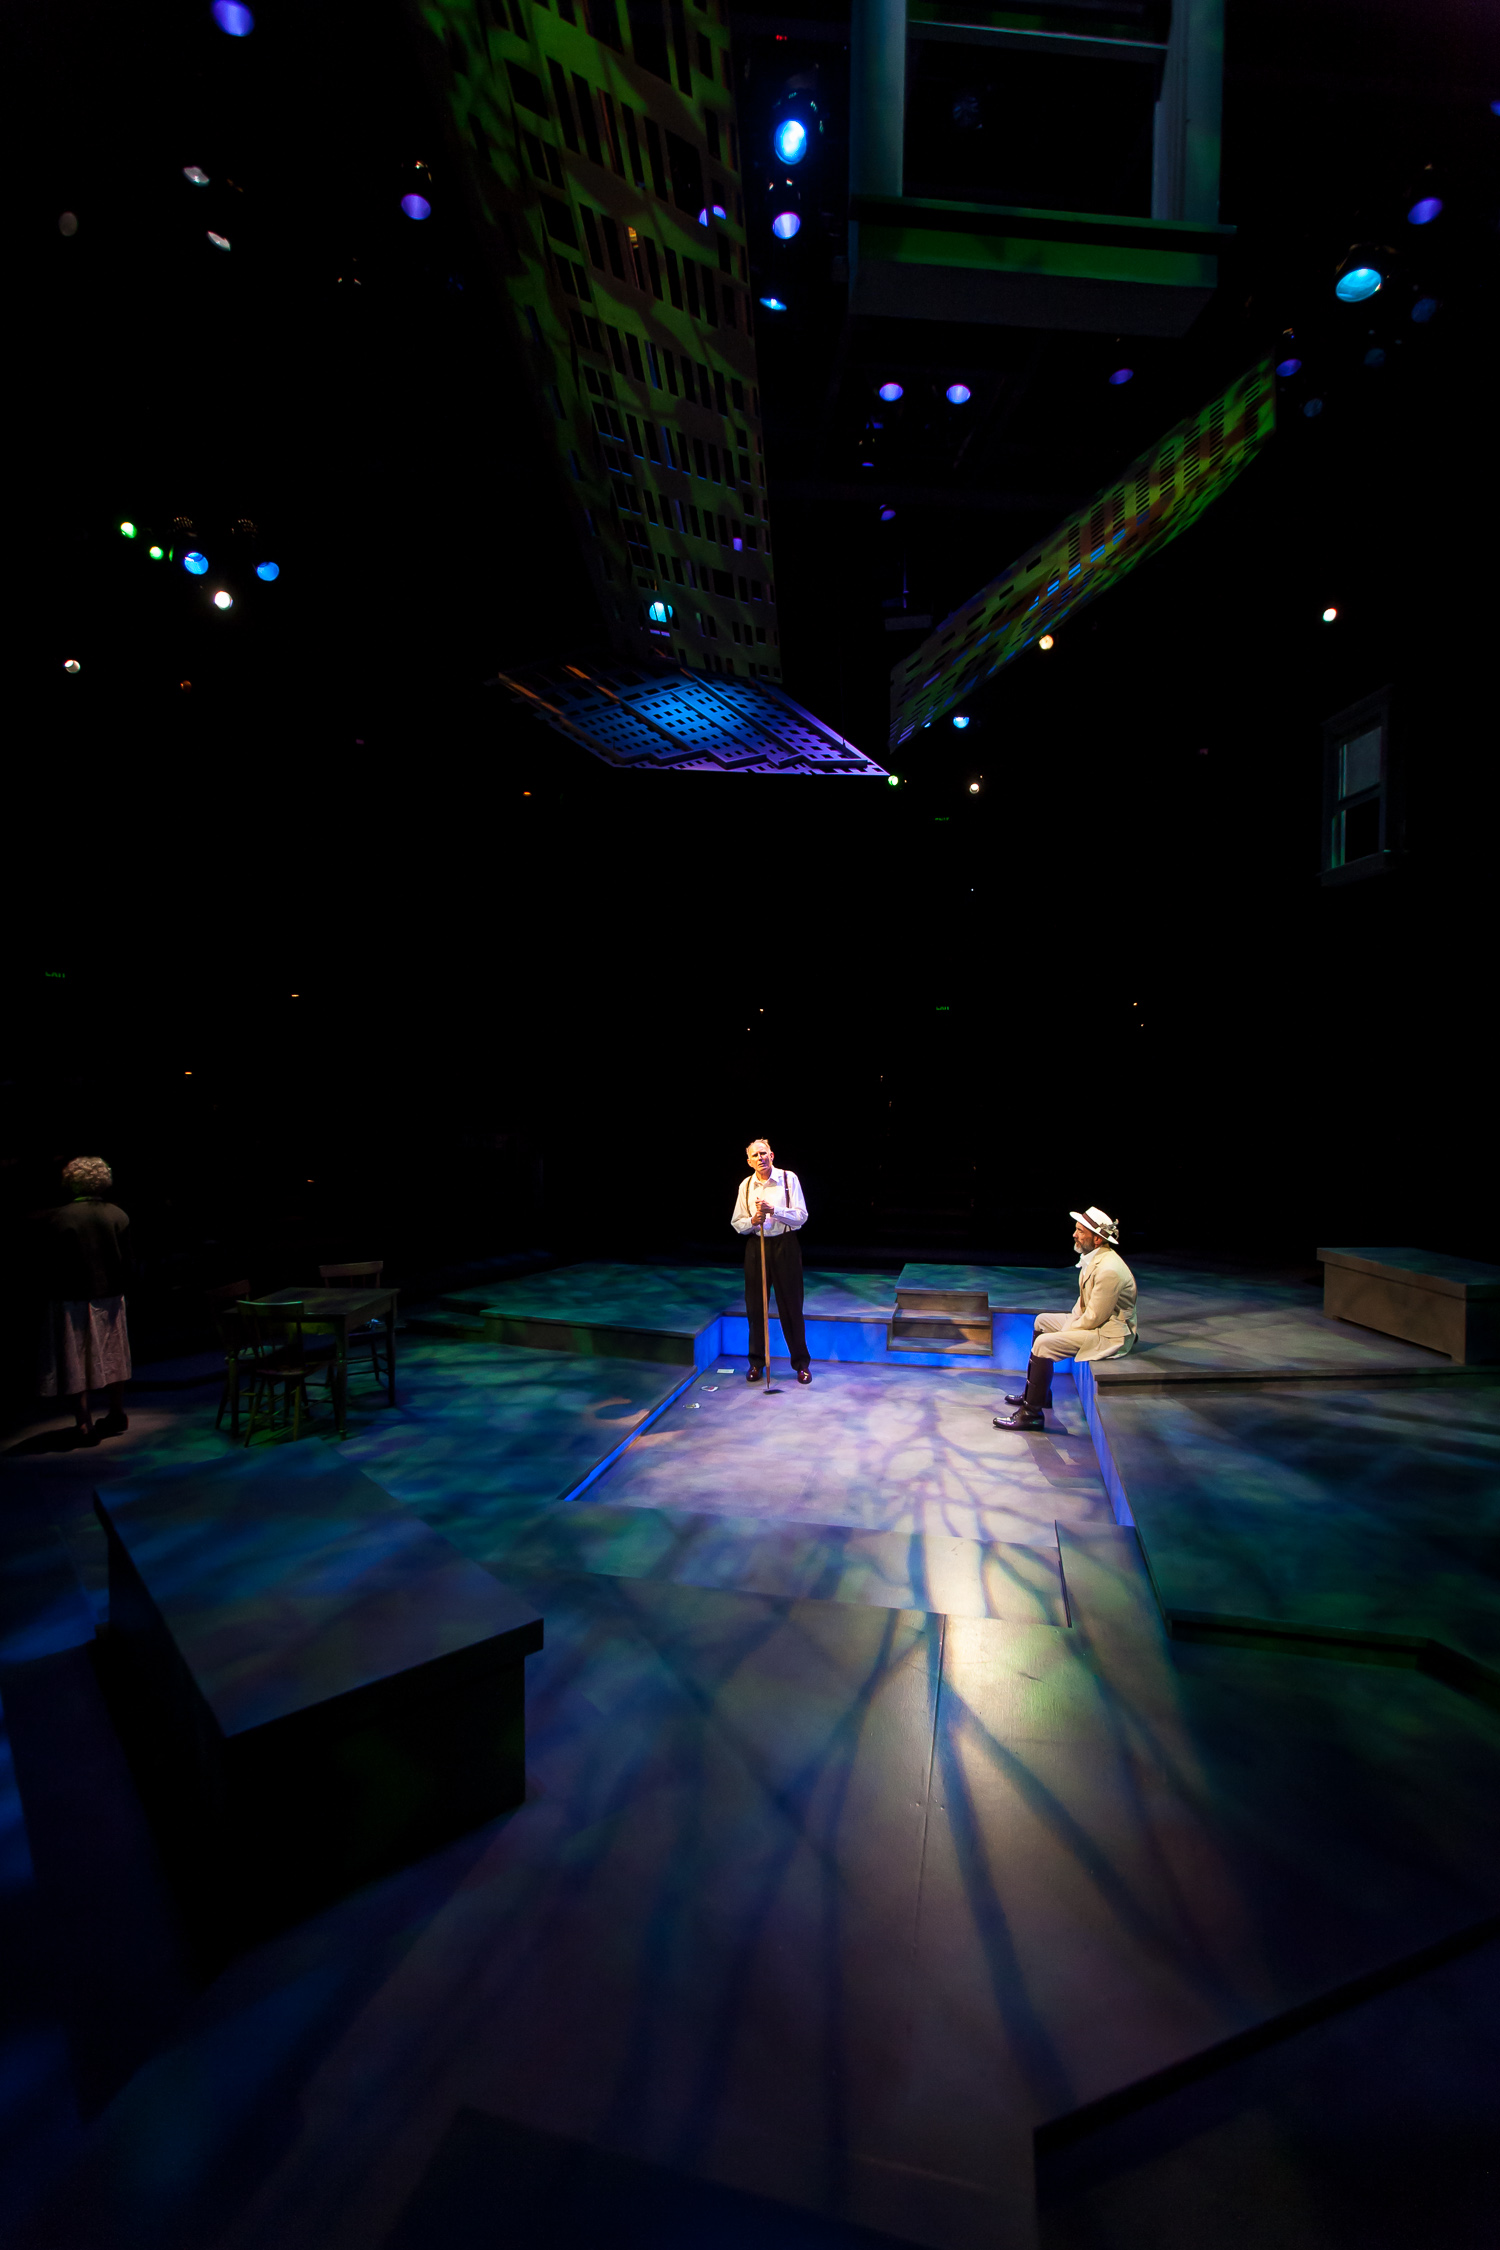 DEATH OF A SALESMAN at the Denver Center Theatre Company, photo by Jennifer Koskinen | Merritt Design Photo